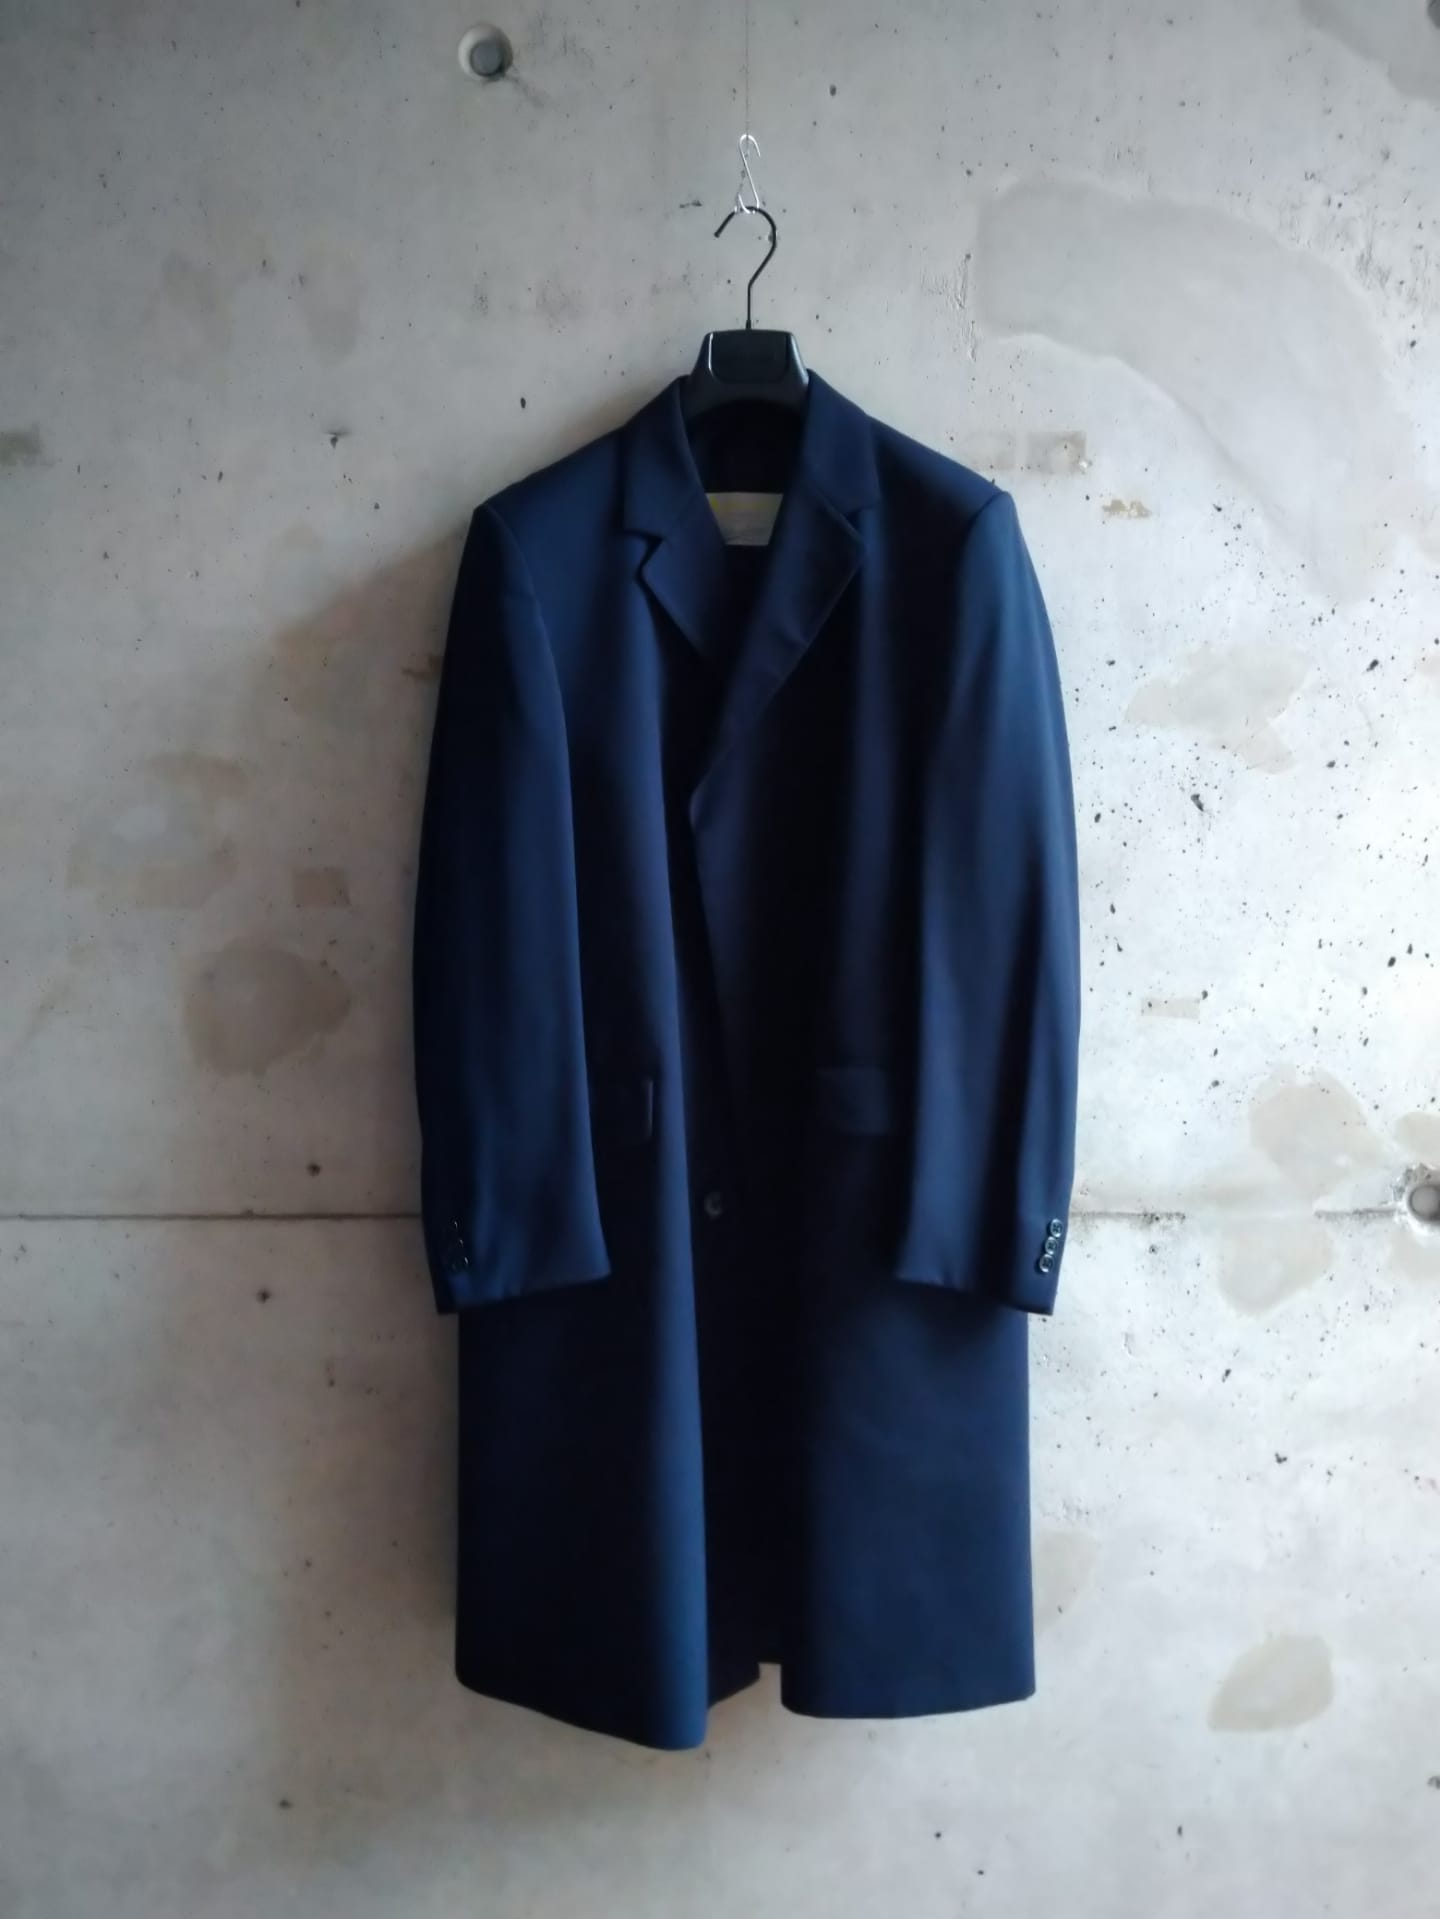 Aquascutum of London dark blue coat